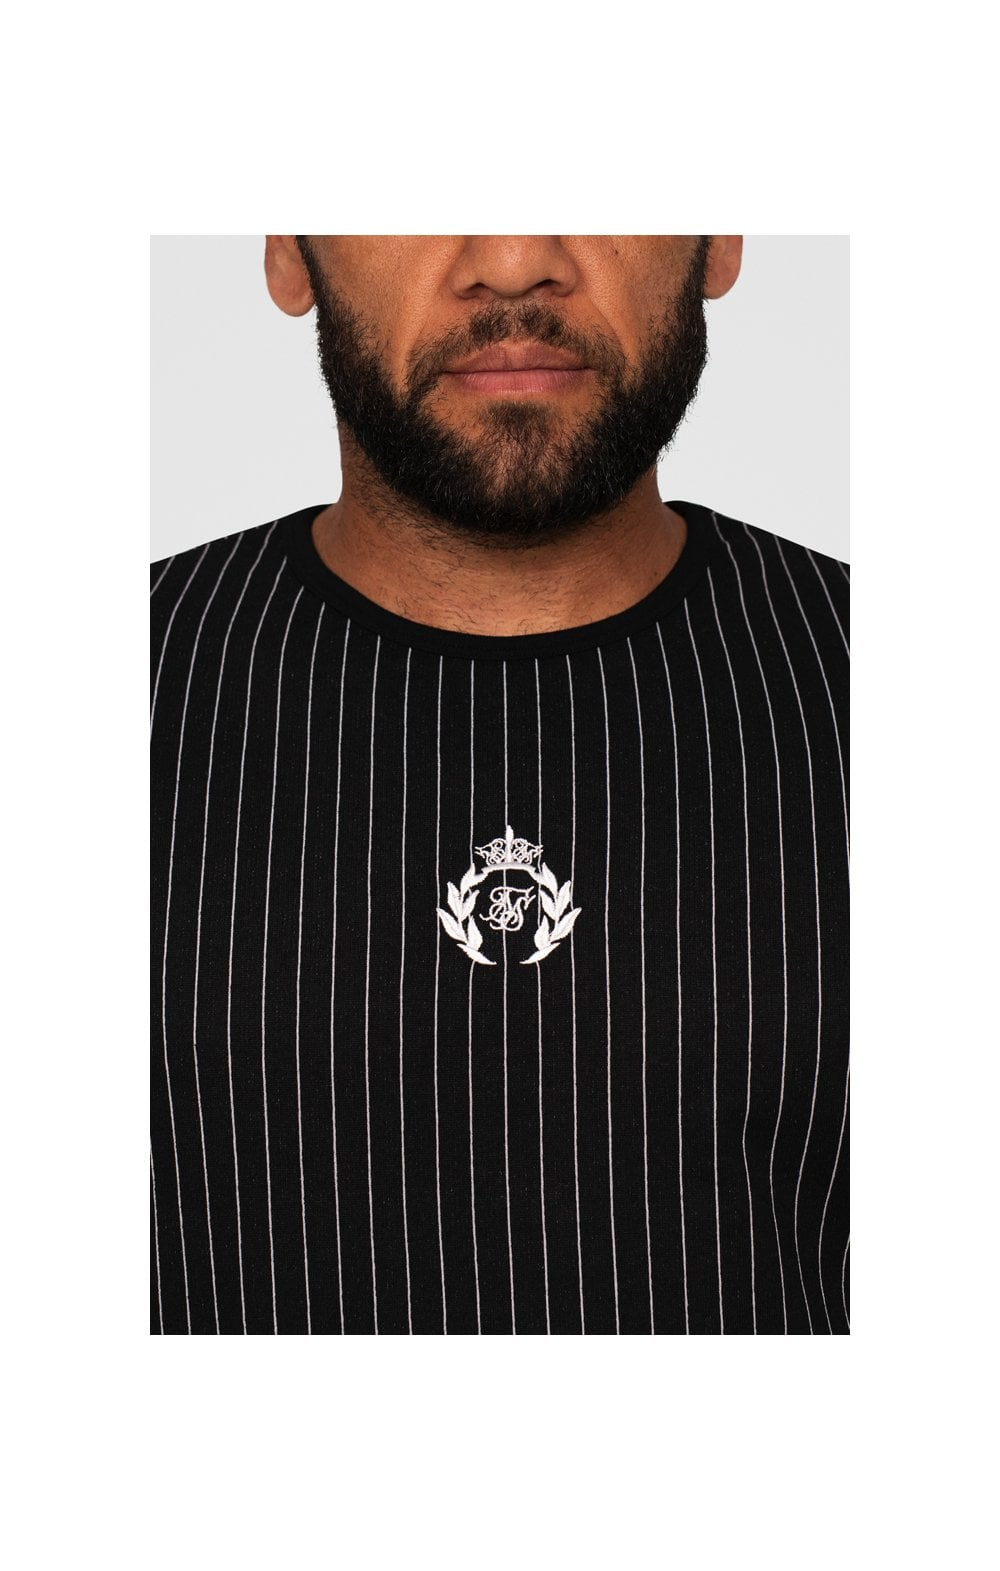 Load image into Gallery viewer, SikSilk x Dani Alves Curved Hem Gym Tee – Black & White (1)